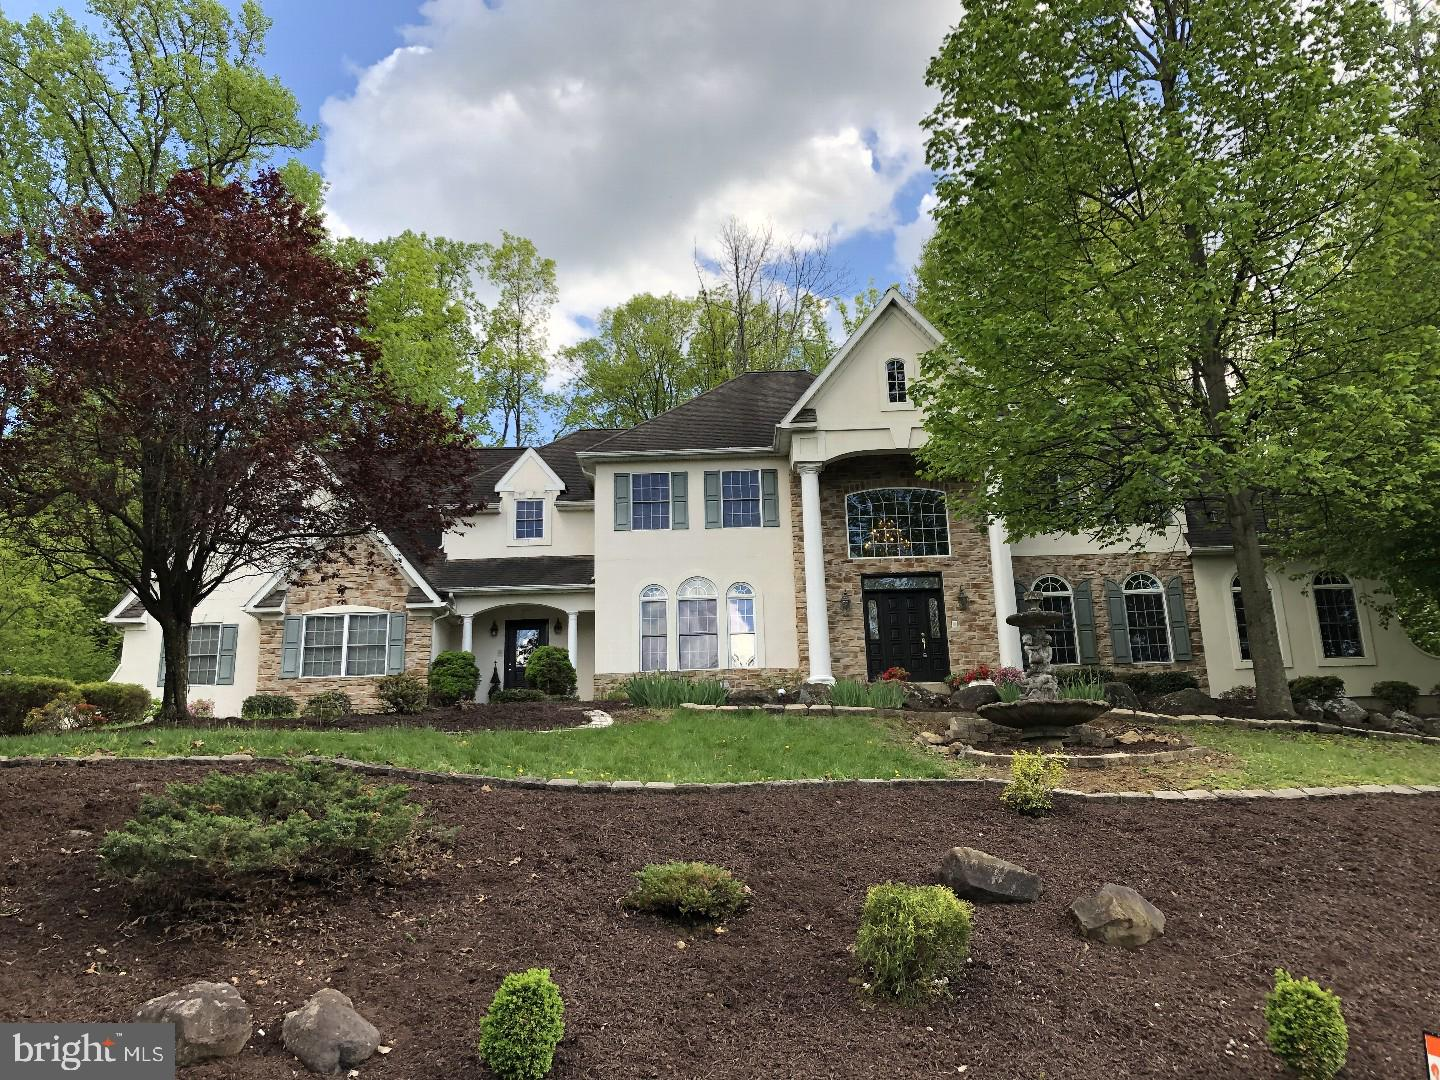 4642 BROOKRIDGE DRIVE, CENTER VALLEY, PA 18034